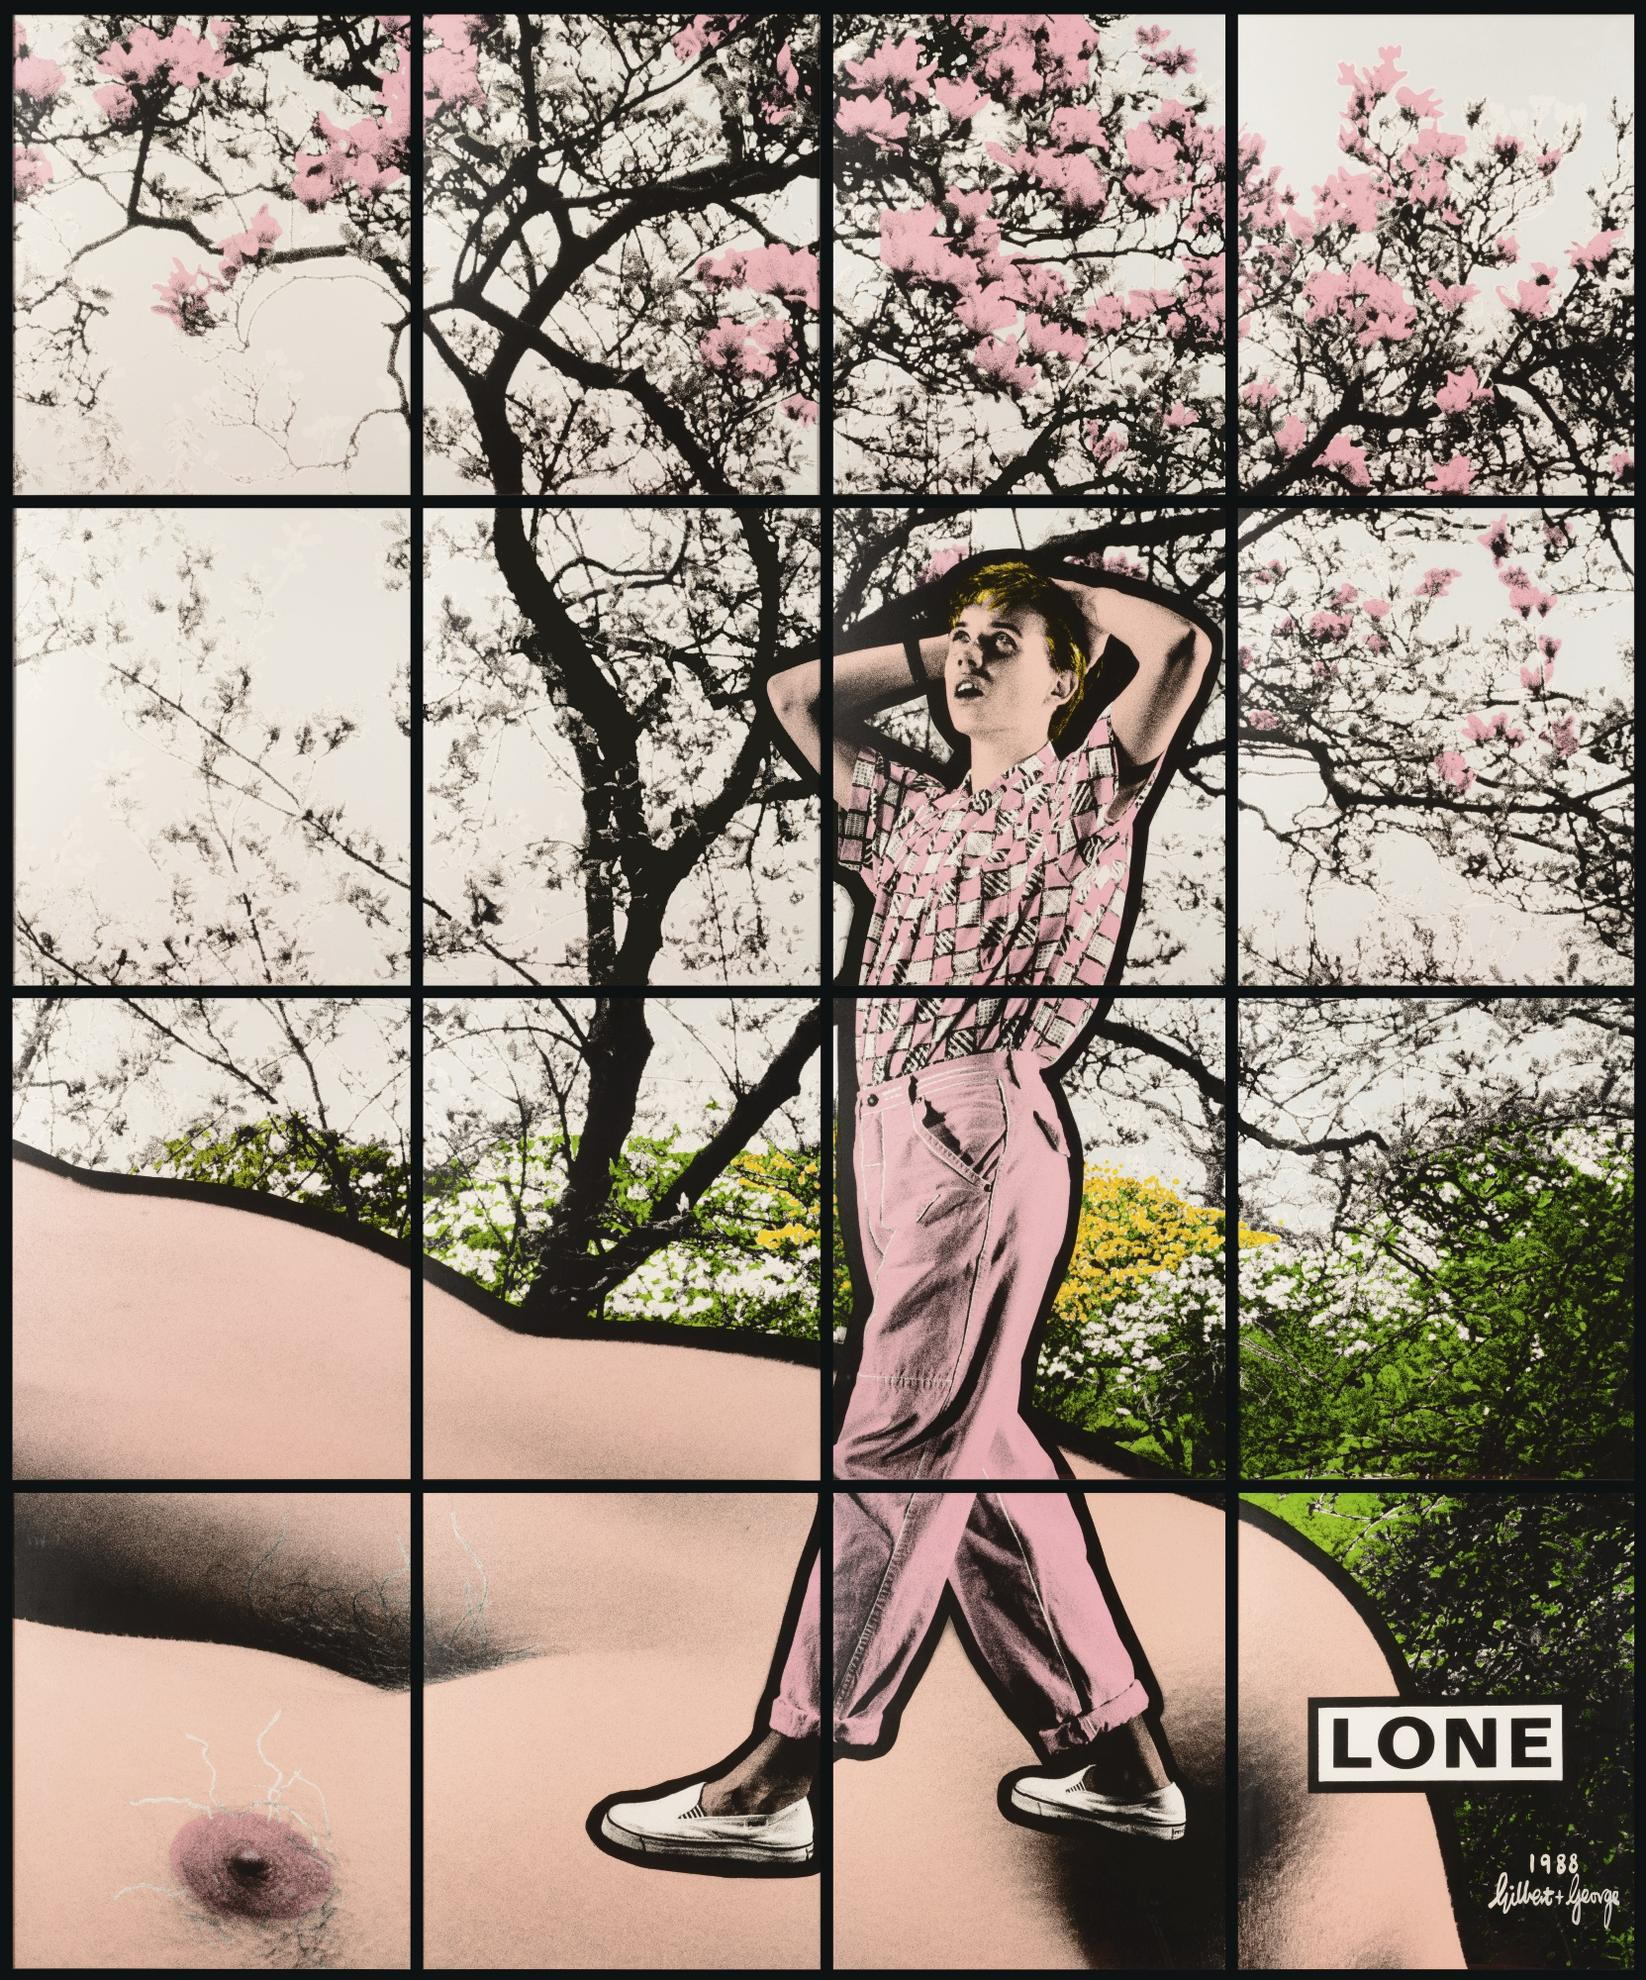 Gilbert and George-Lone-1988